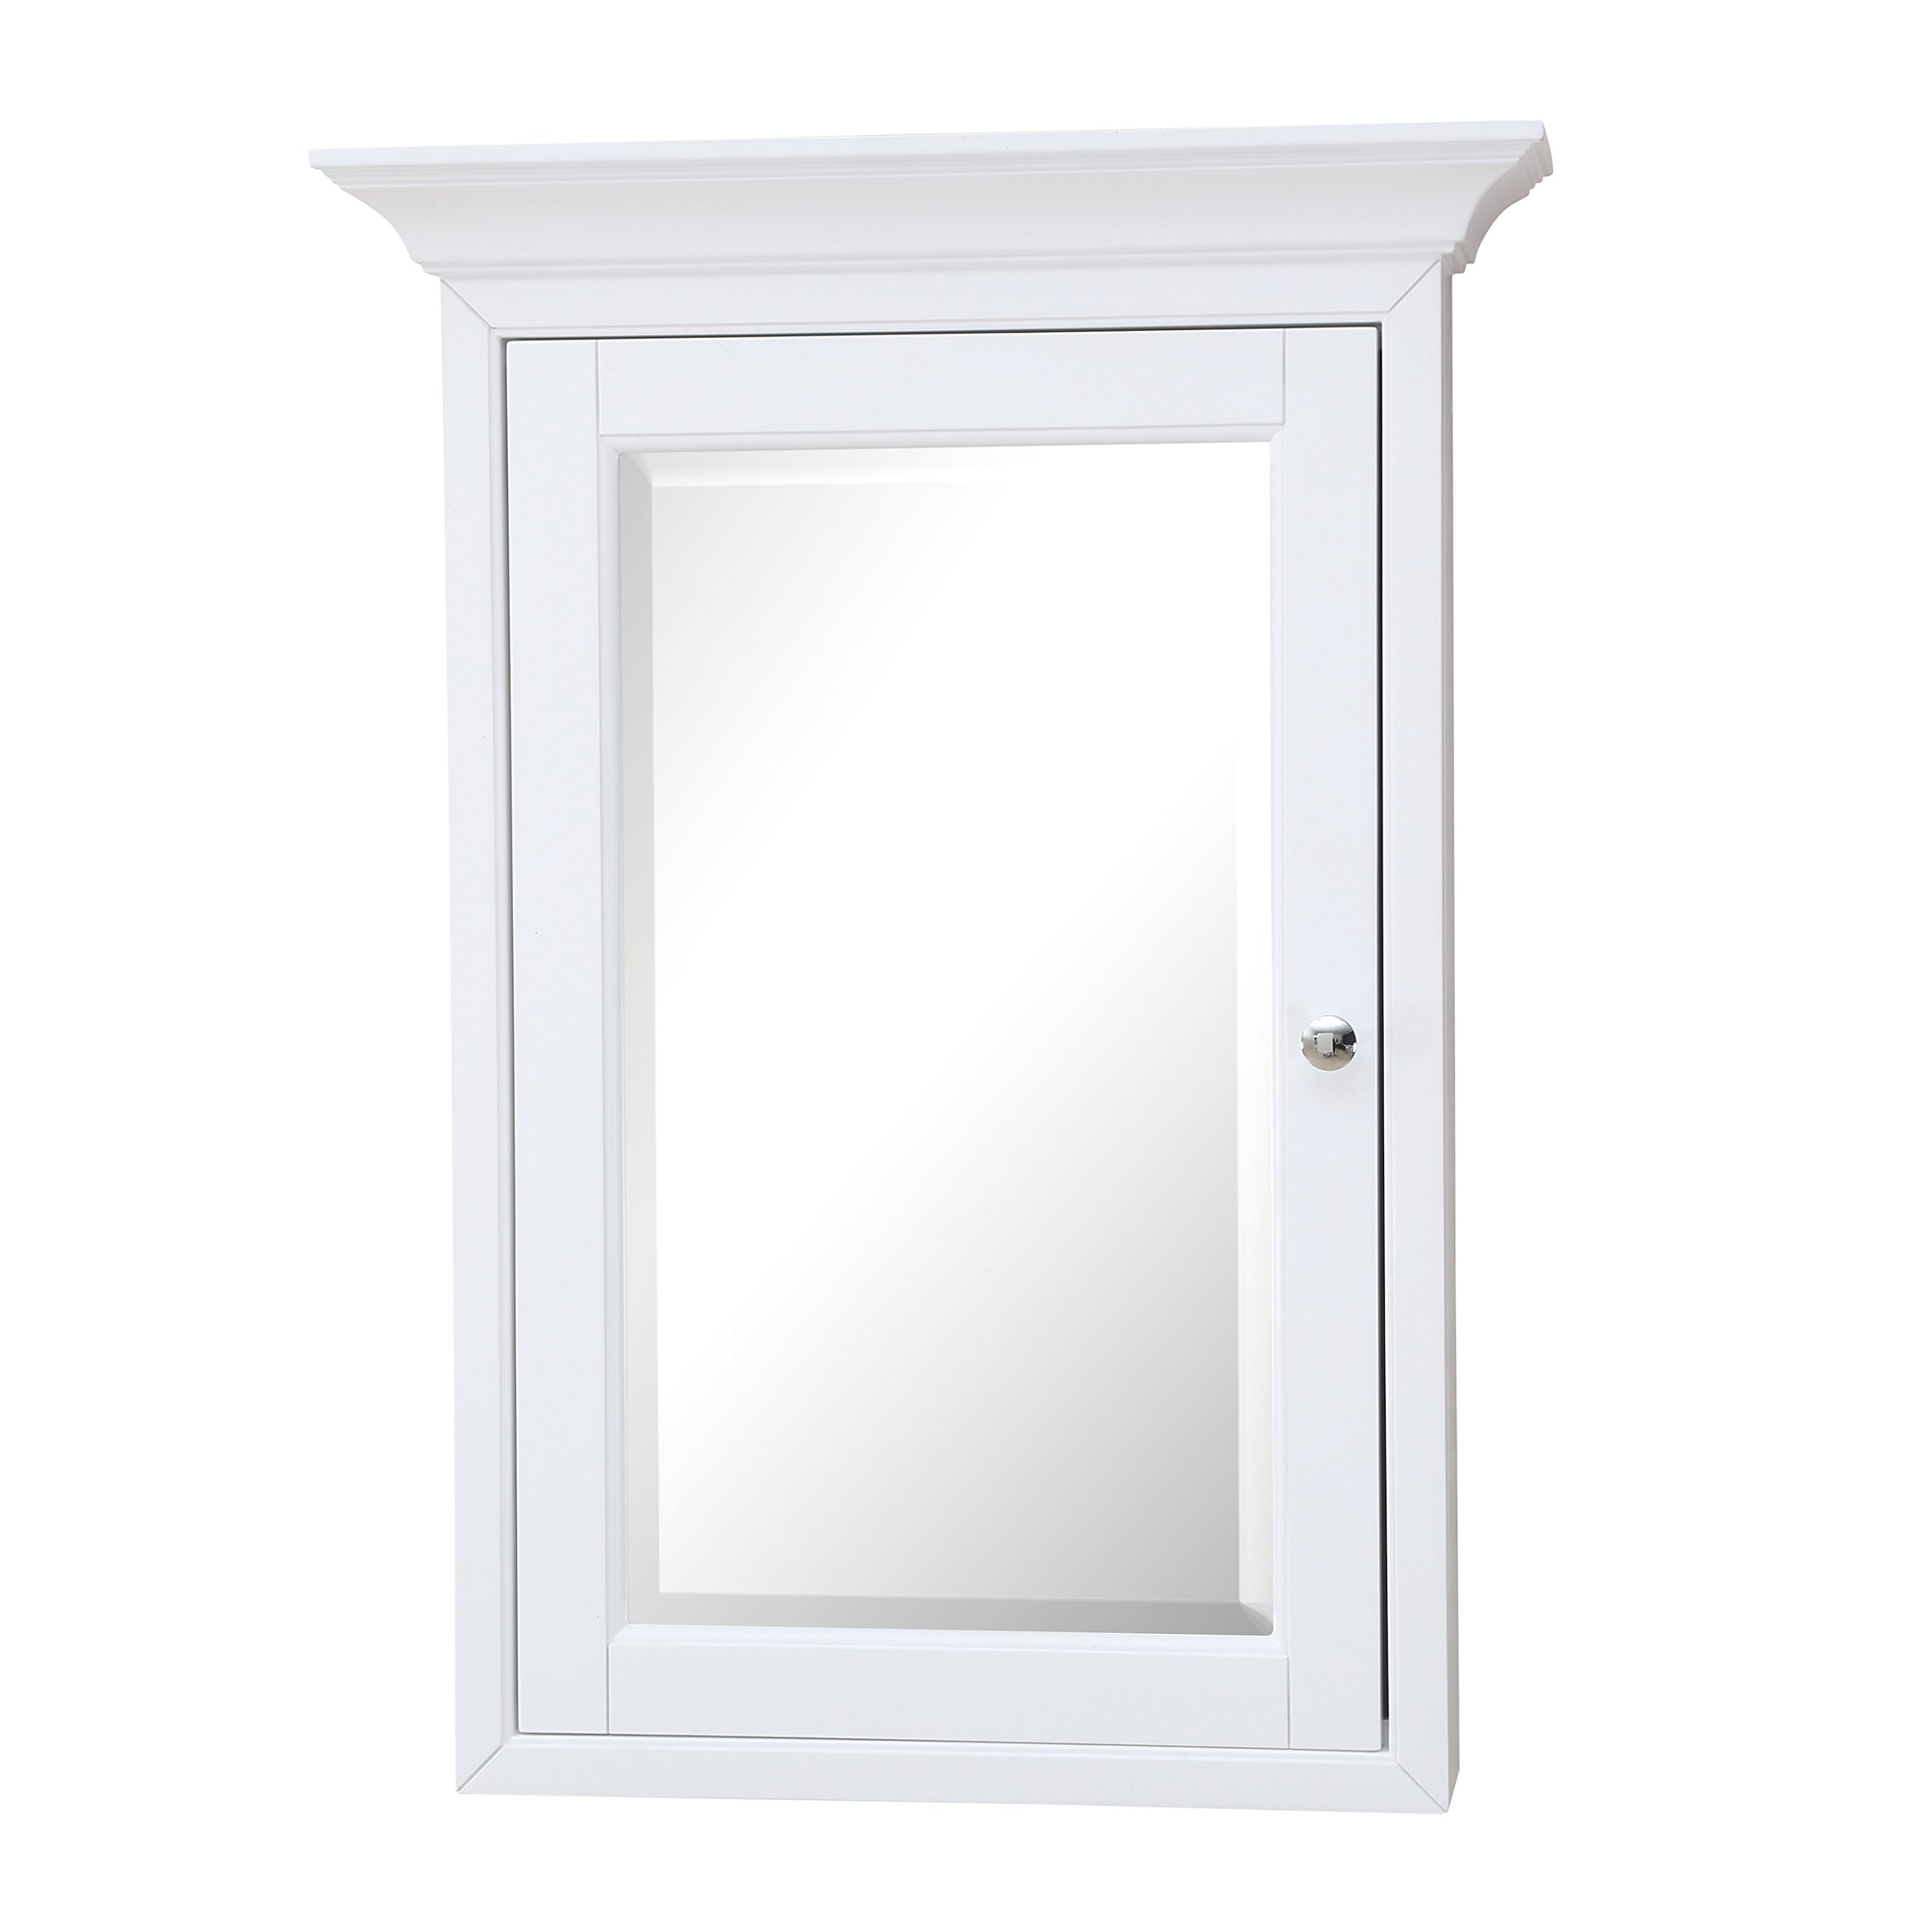 Newport Wall-Mounted Medicine Cabinet (White) by Kitchen Bath Collection